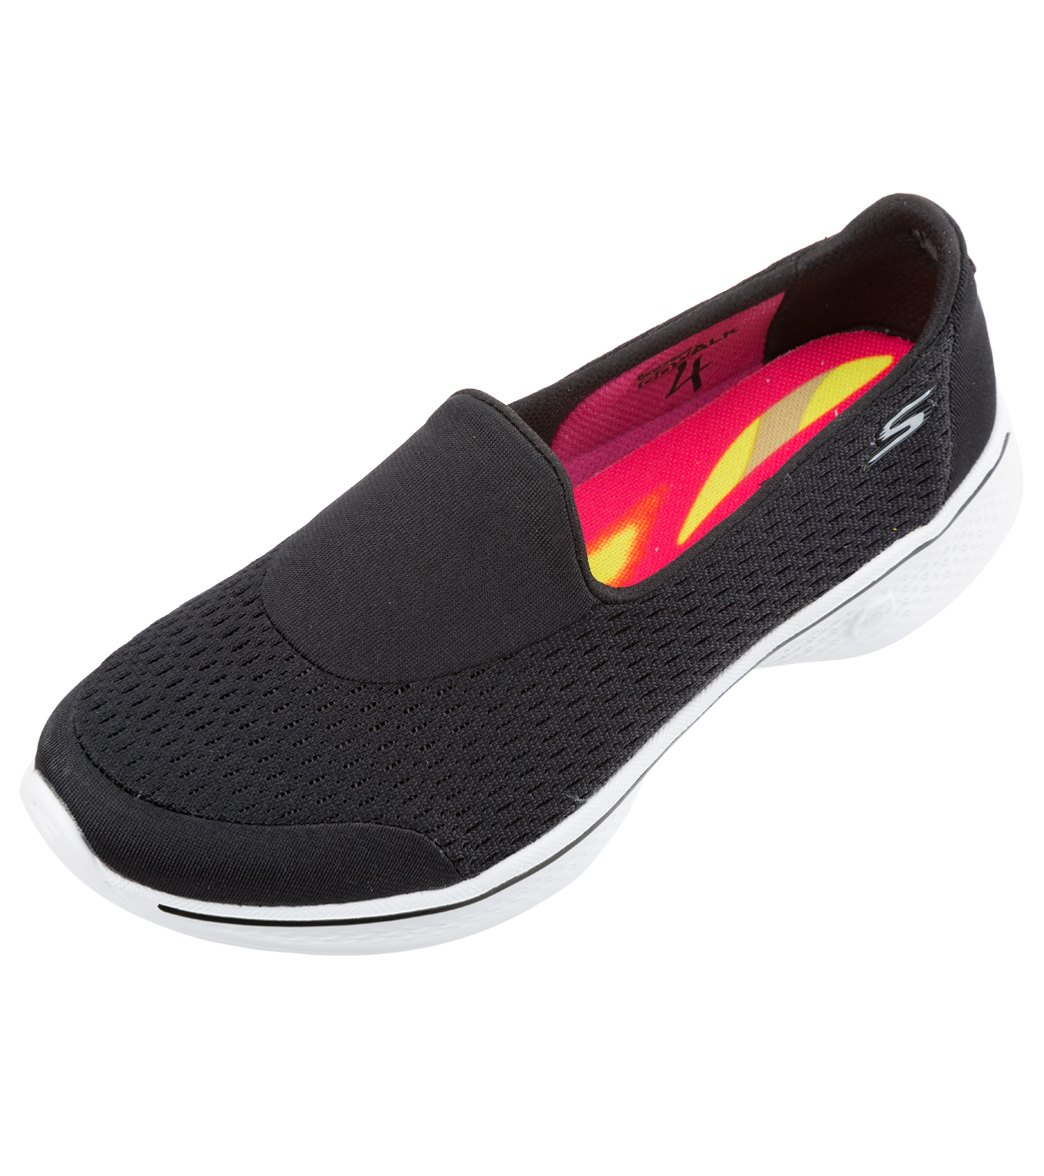 0e8ac79cf63ab Skechers Women s GOwalk 4 - Pursuit at SwimOutlet.com - Free Shipping